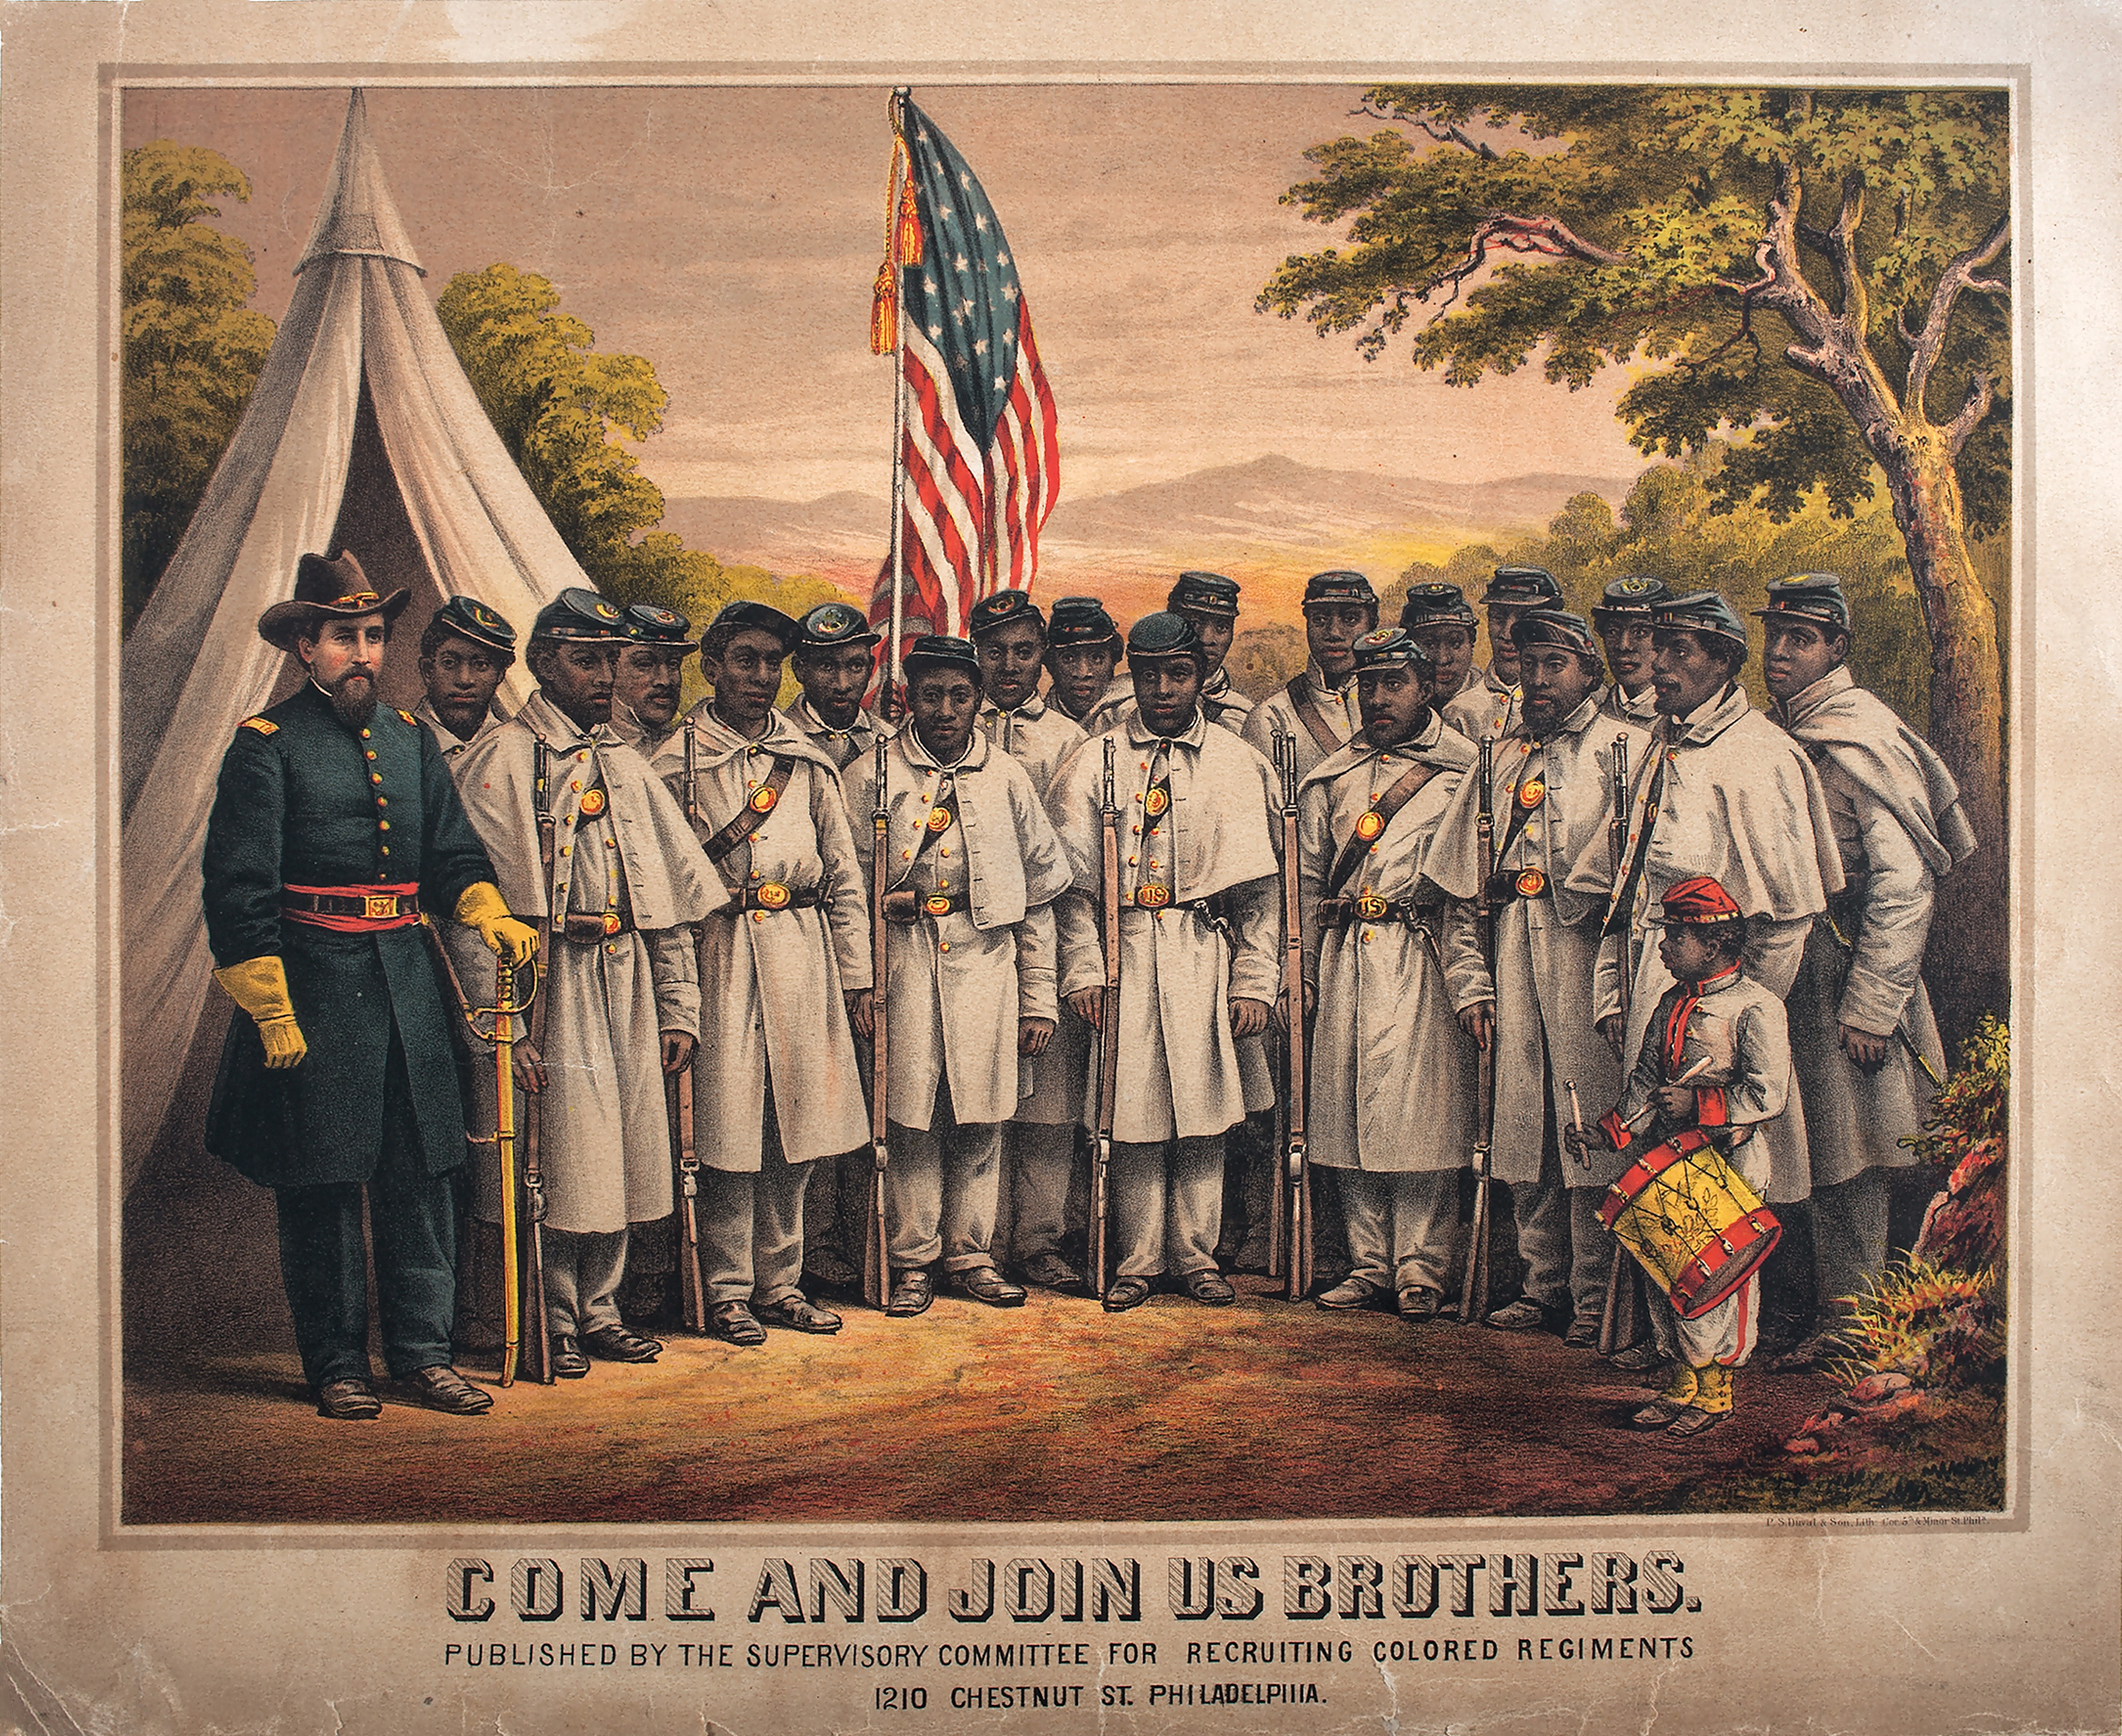 United States Colored Troops - Wikipedia